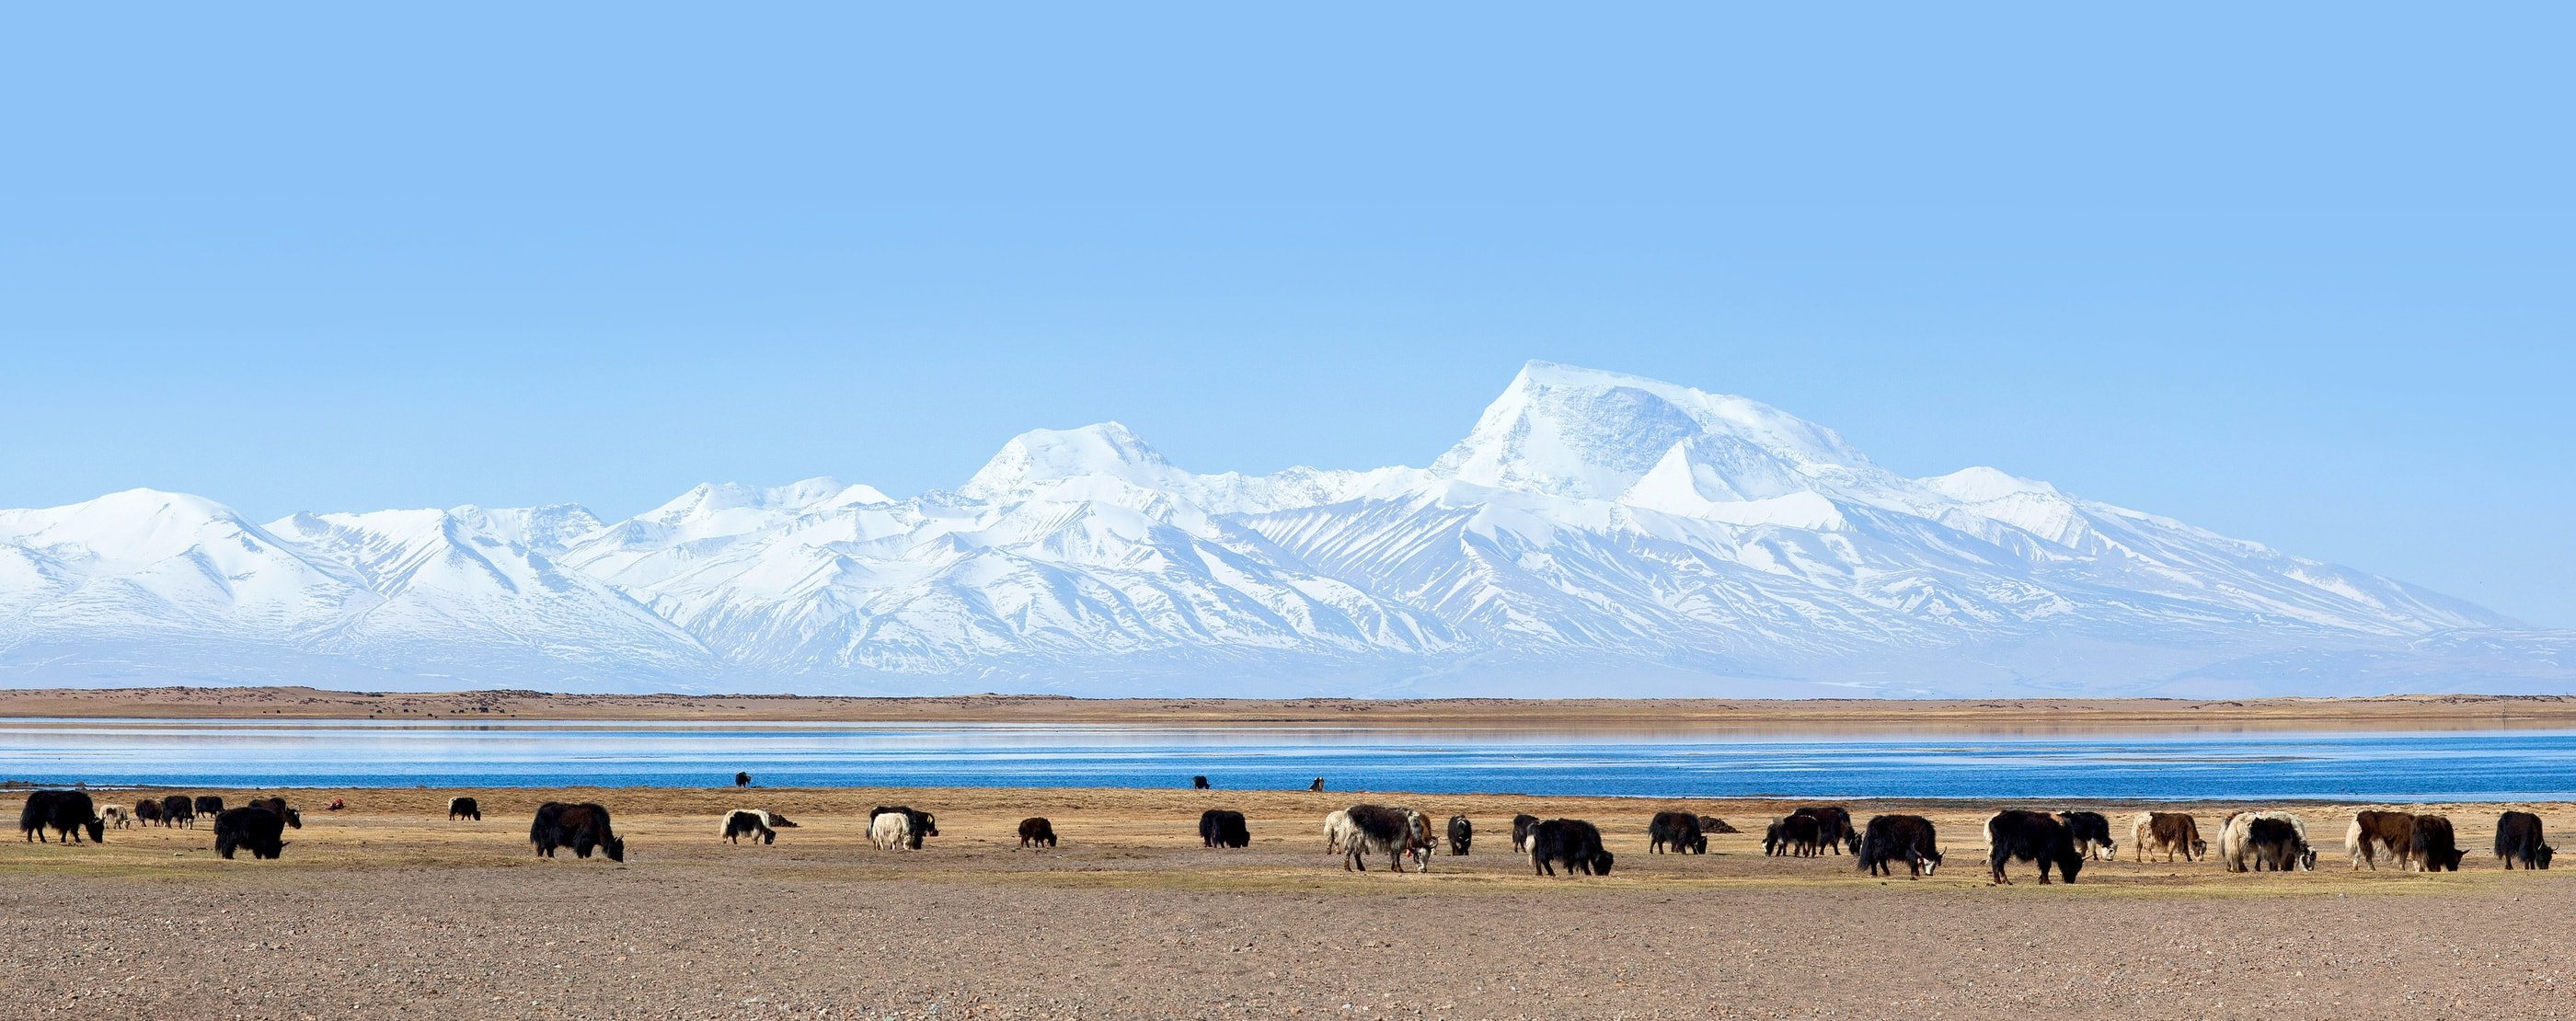 Herd of Yaks by the lake Manasarovar in Tibet